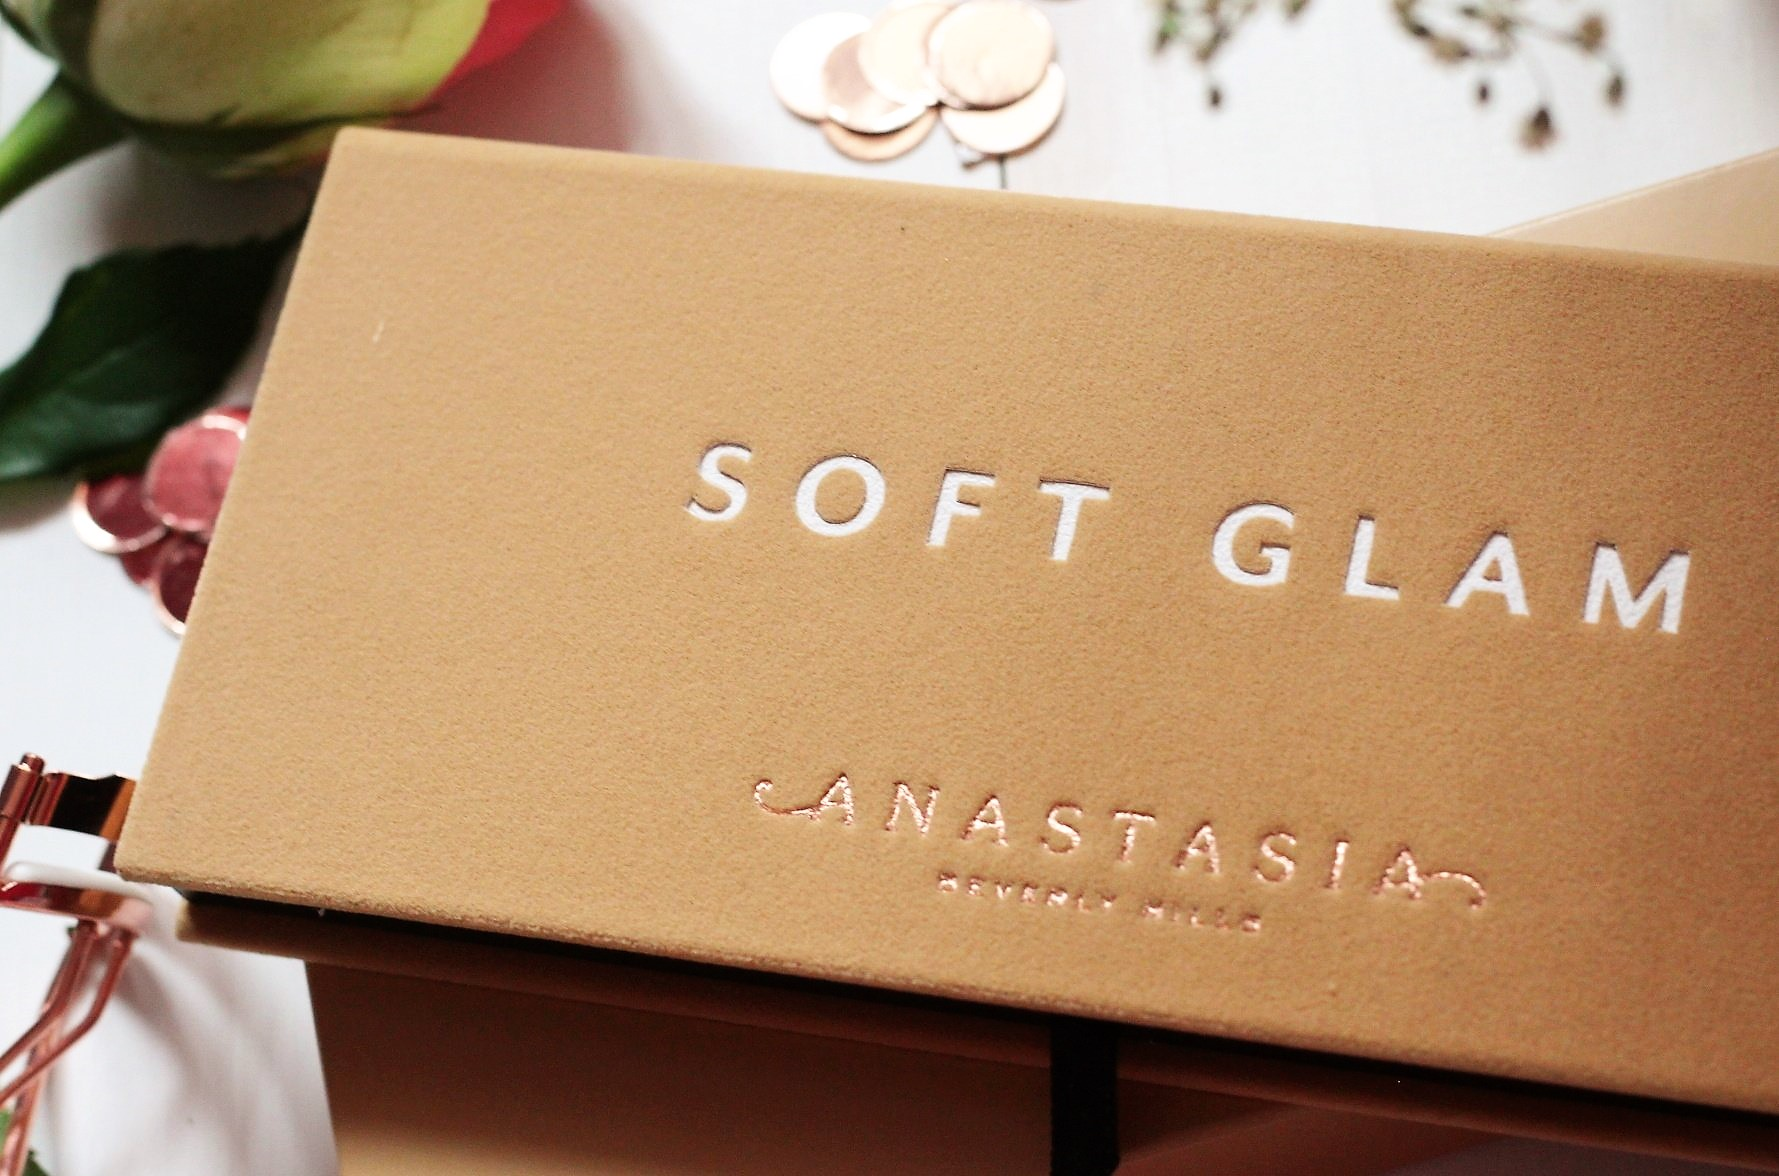 Anastasia Beverly Hills Soft Glam Eyeshadow Palette Review and Swatches 3 (2).jpeg